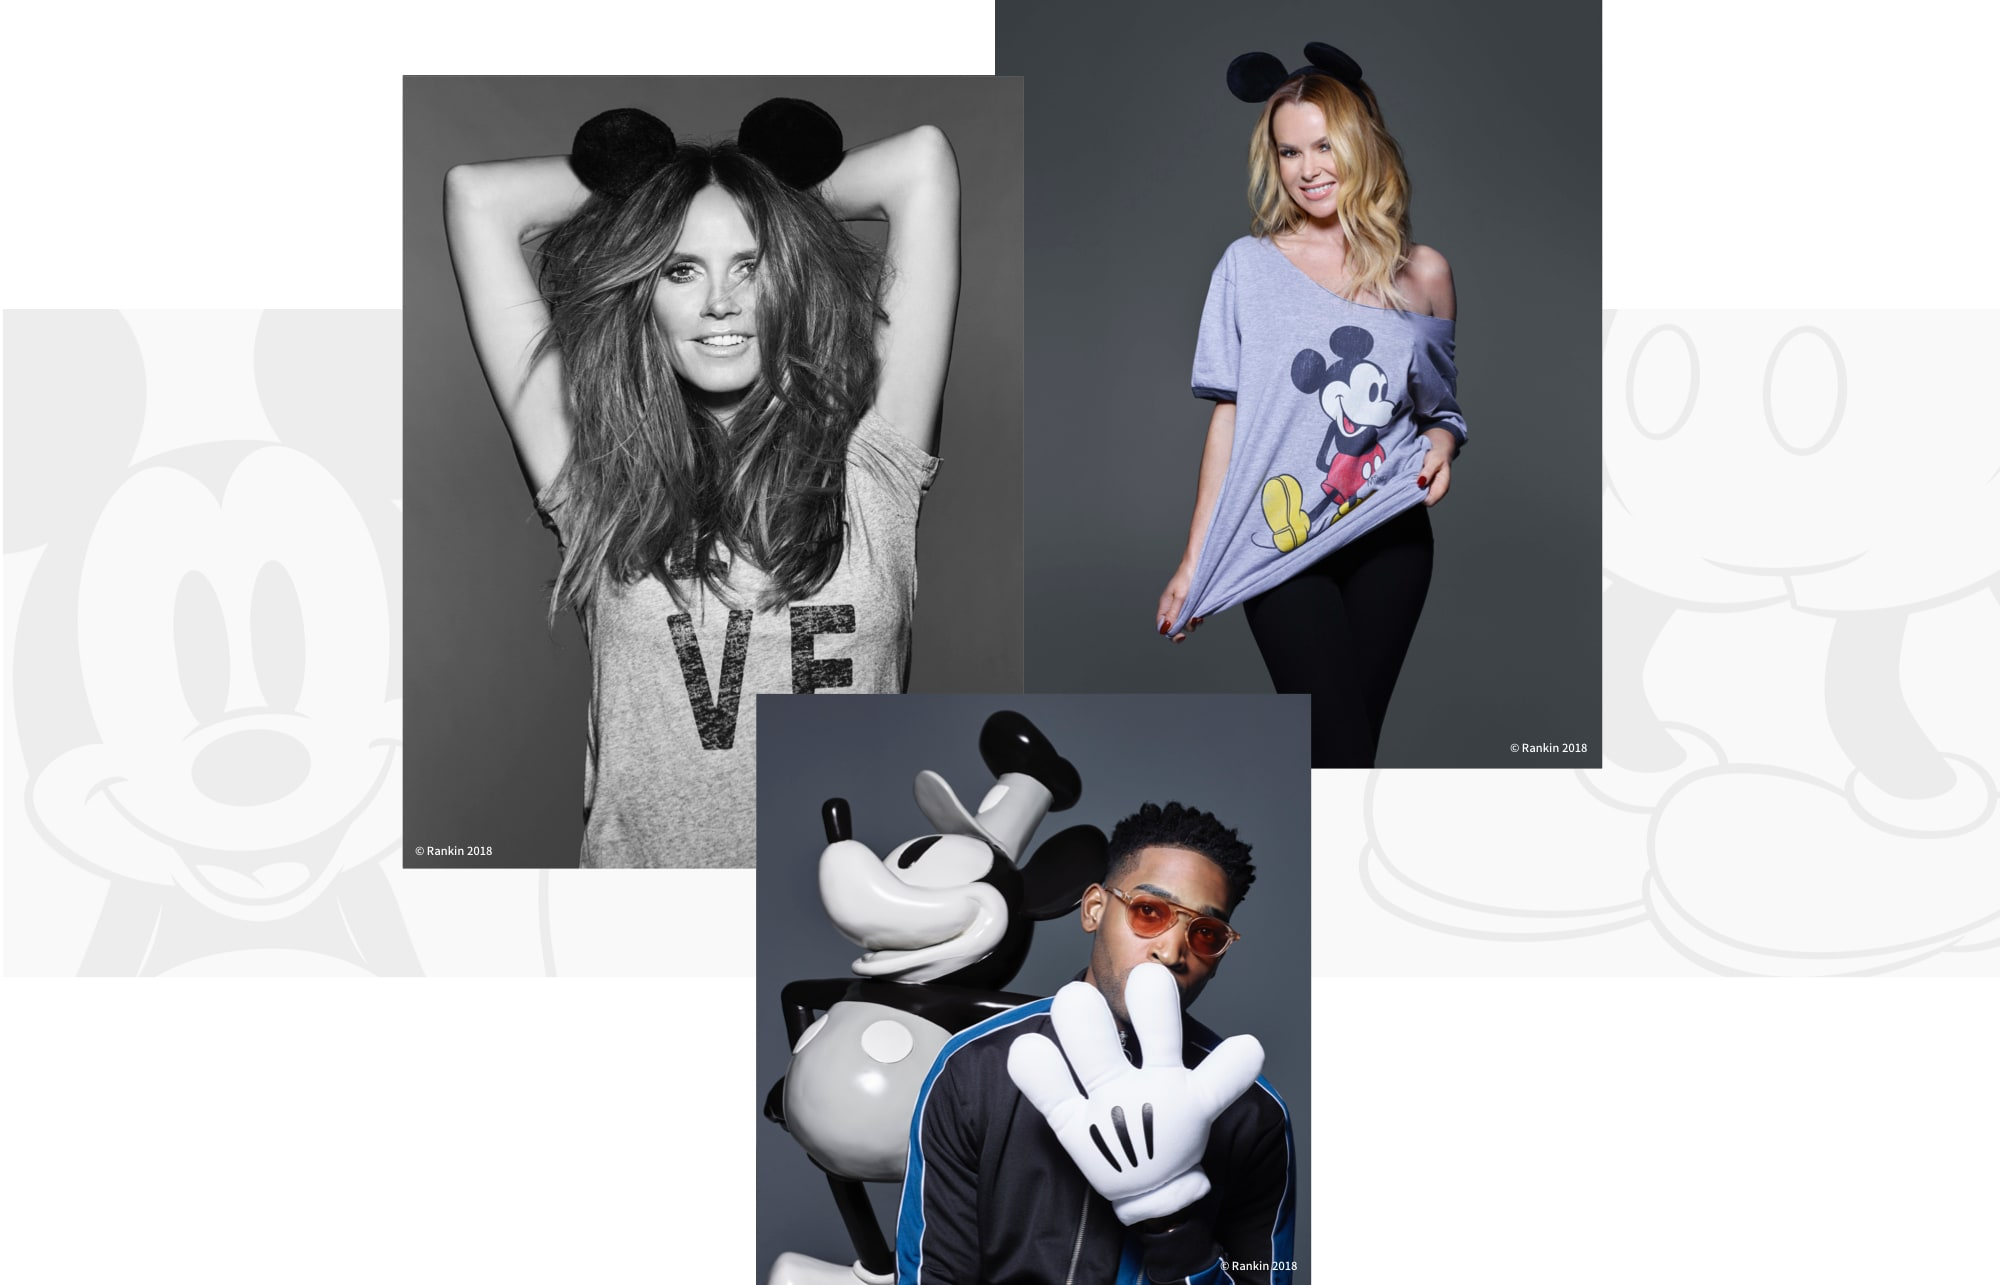 Heidi Klum, Amanda Holden and Tinie Tempah celebrate Mickey Mouse